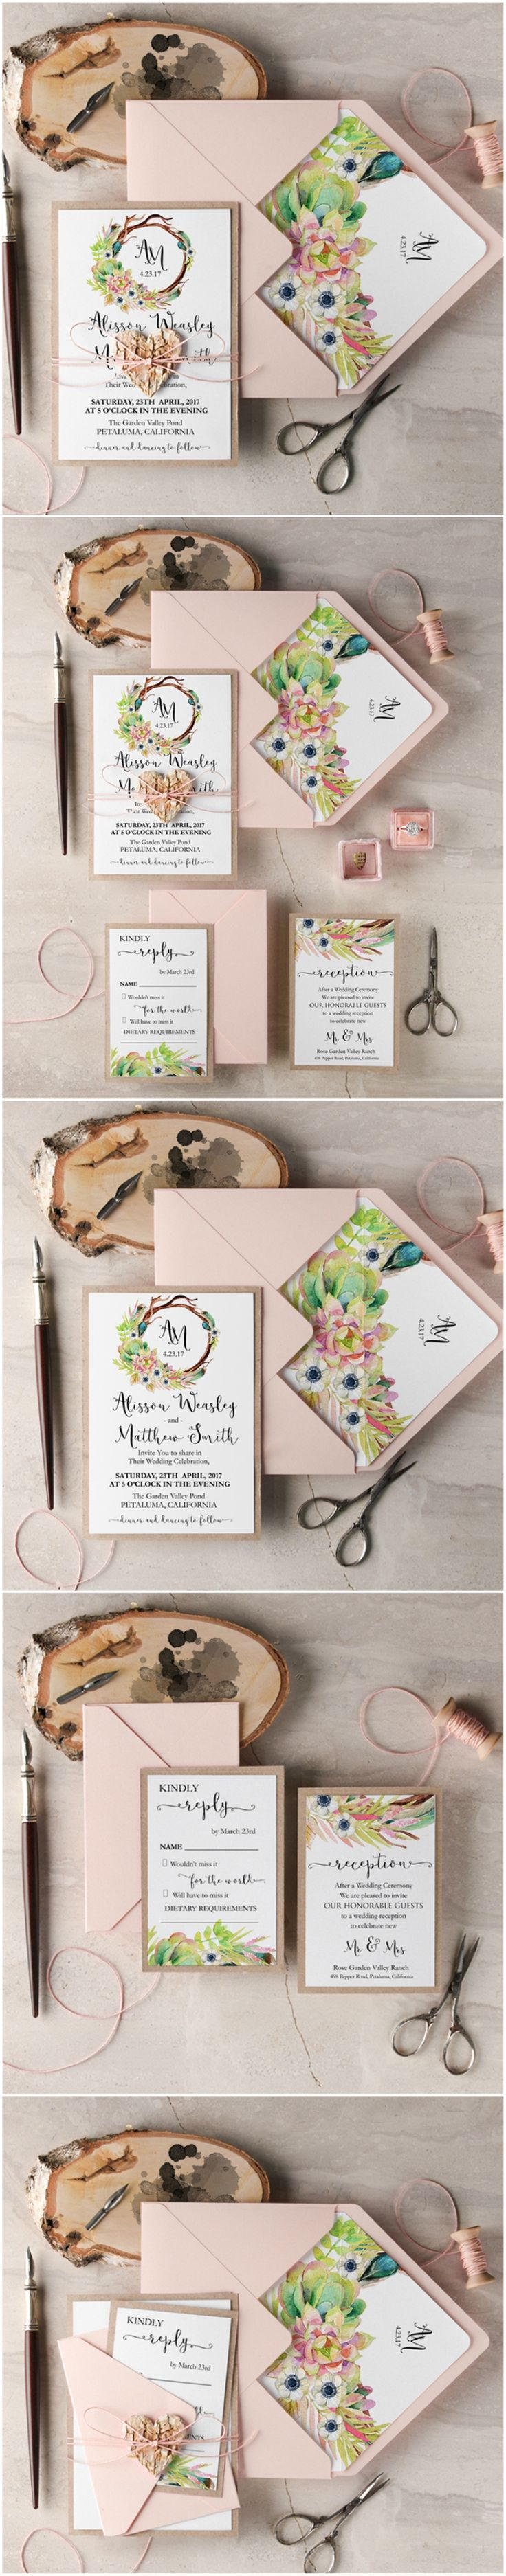 Succulent Wedding invitation..goes with theme